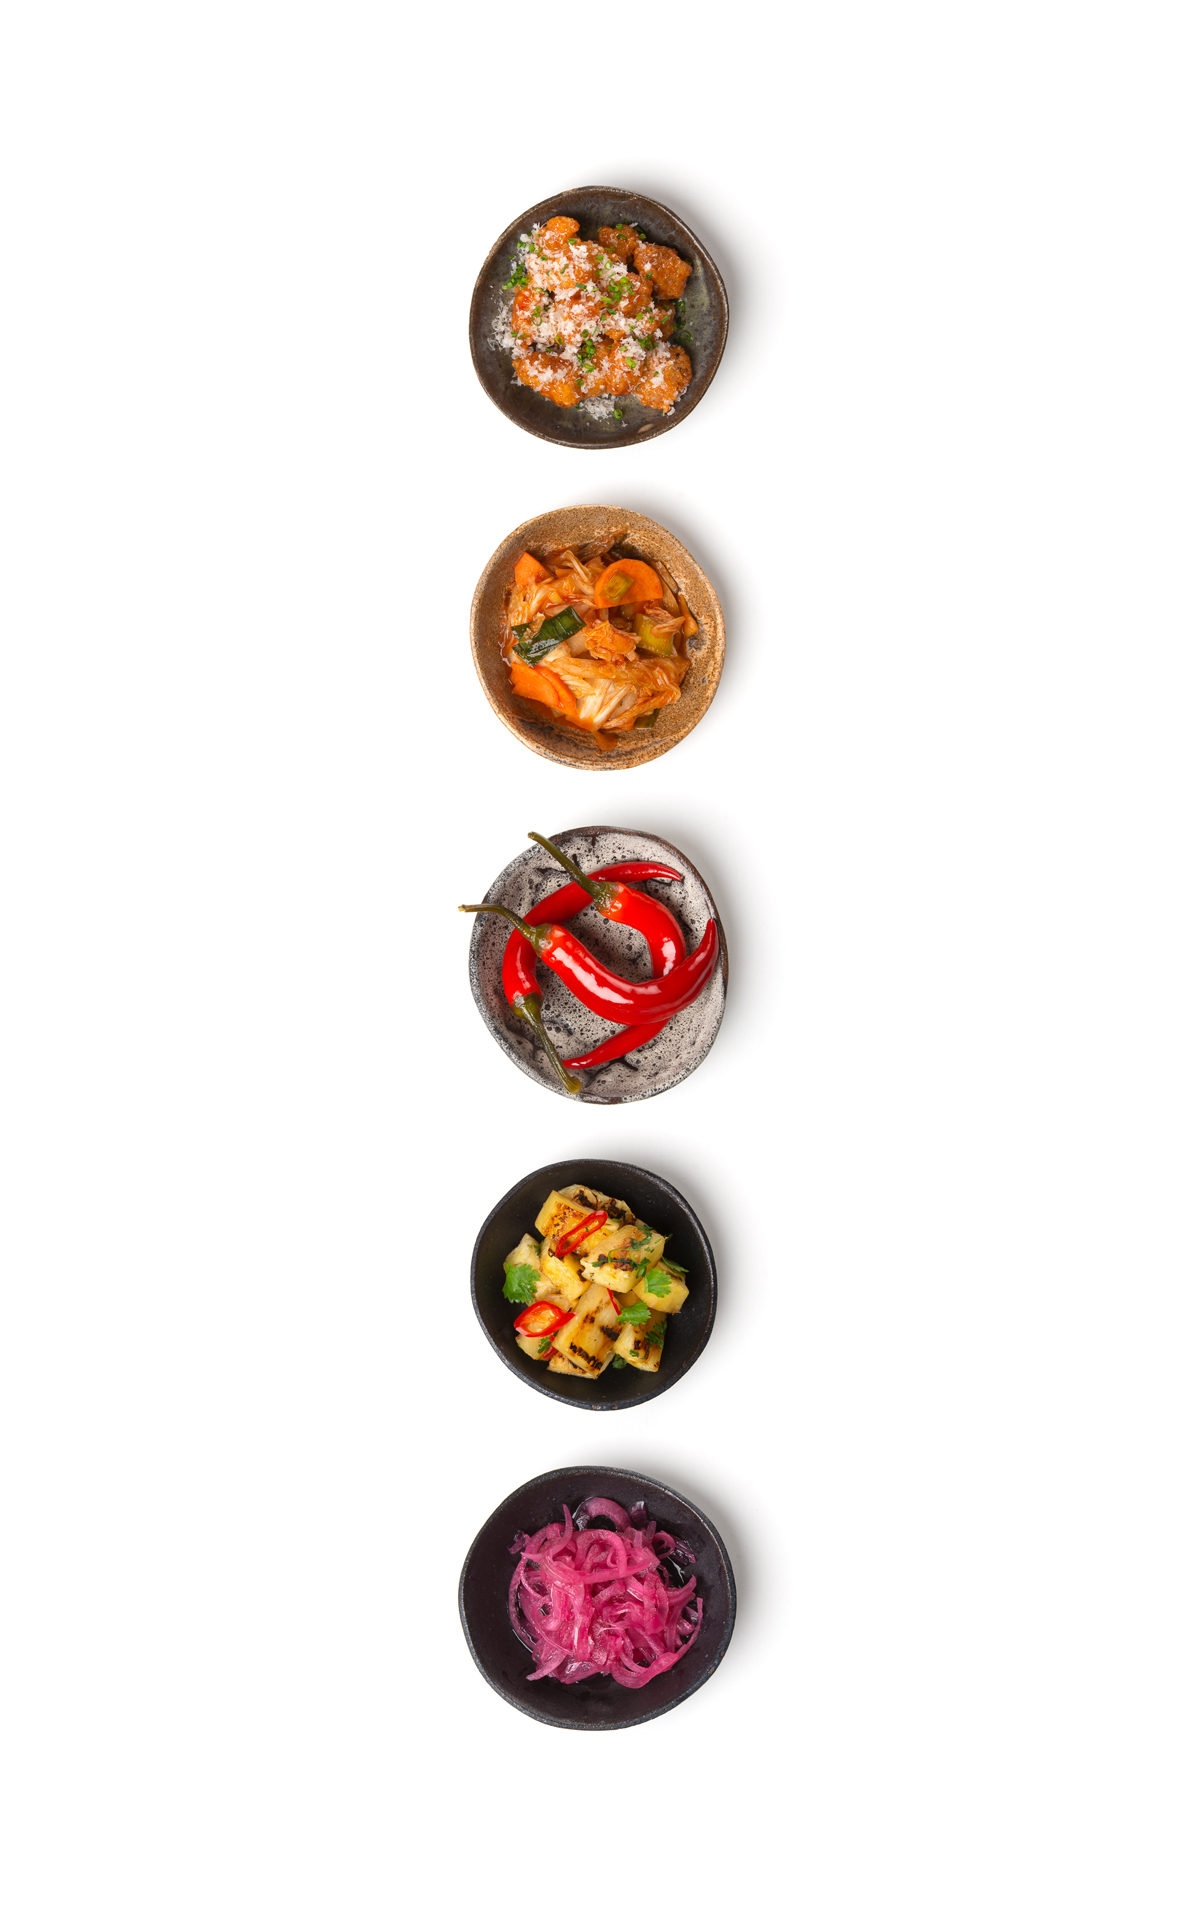 Sidedishes on a row - food & beverage photography